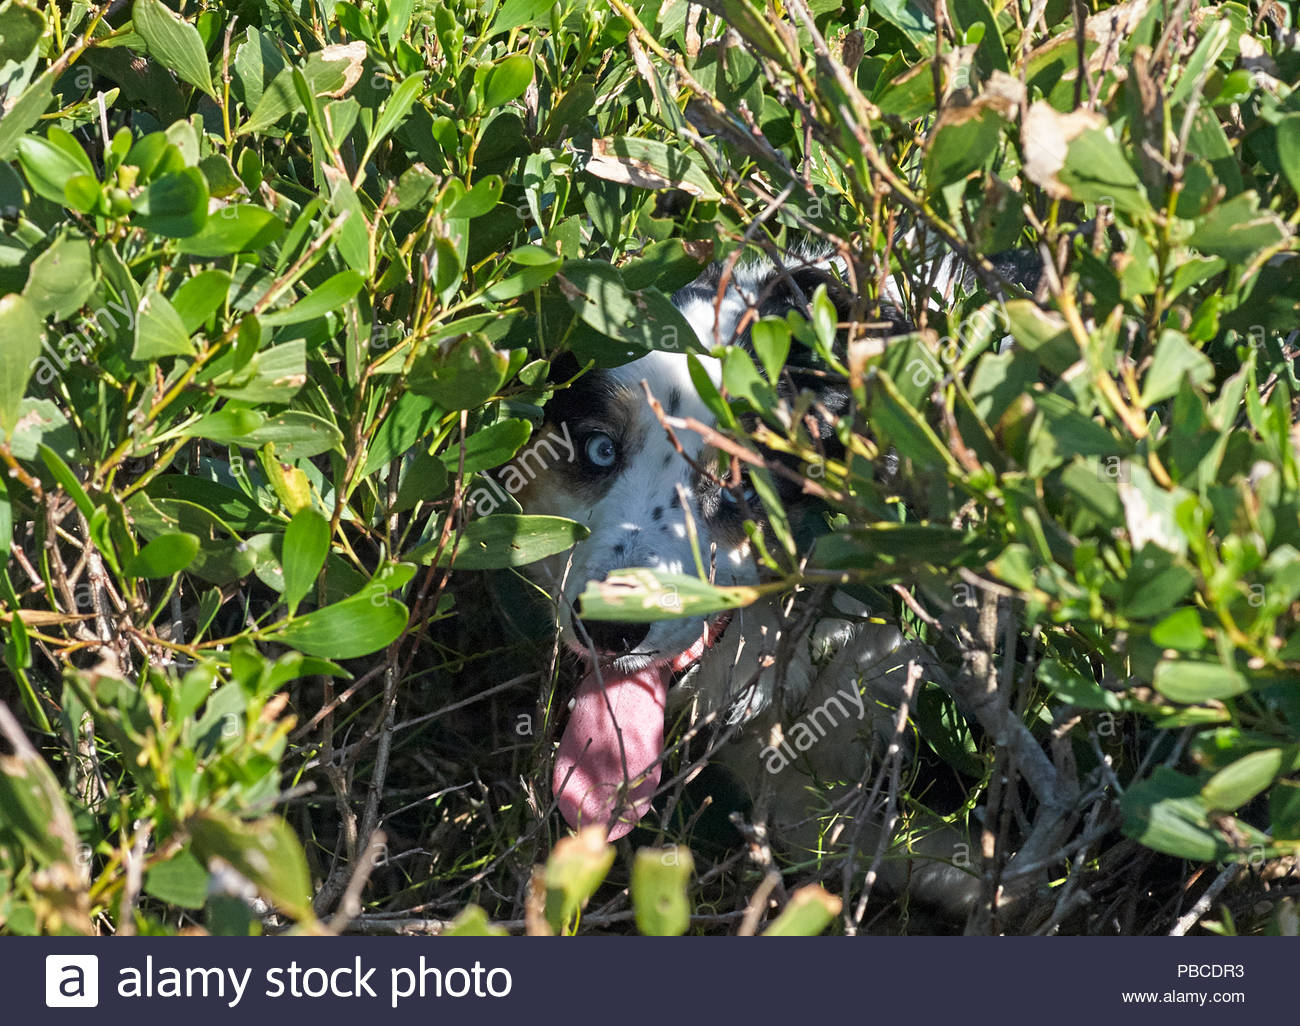 A border collie hidden in the coastal vegetation - sheltering from the sun - with it's tongue hanging out, looking at the camera; at Iluka, NSW. - Stock Image